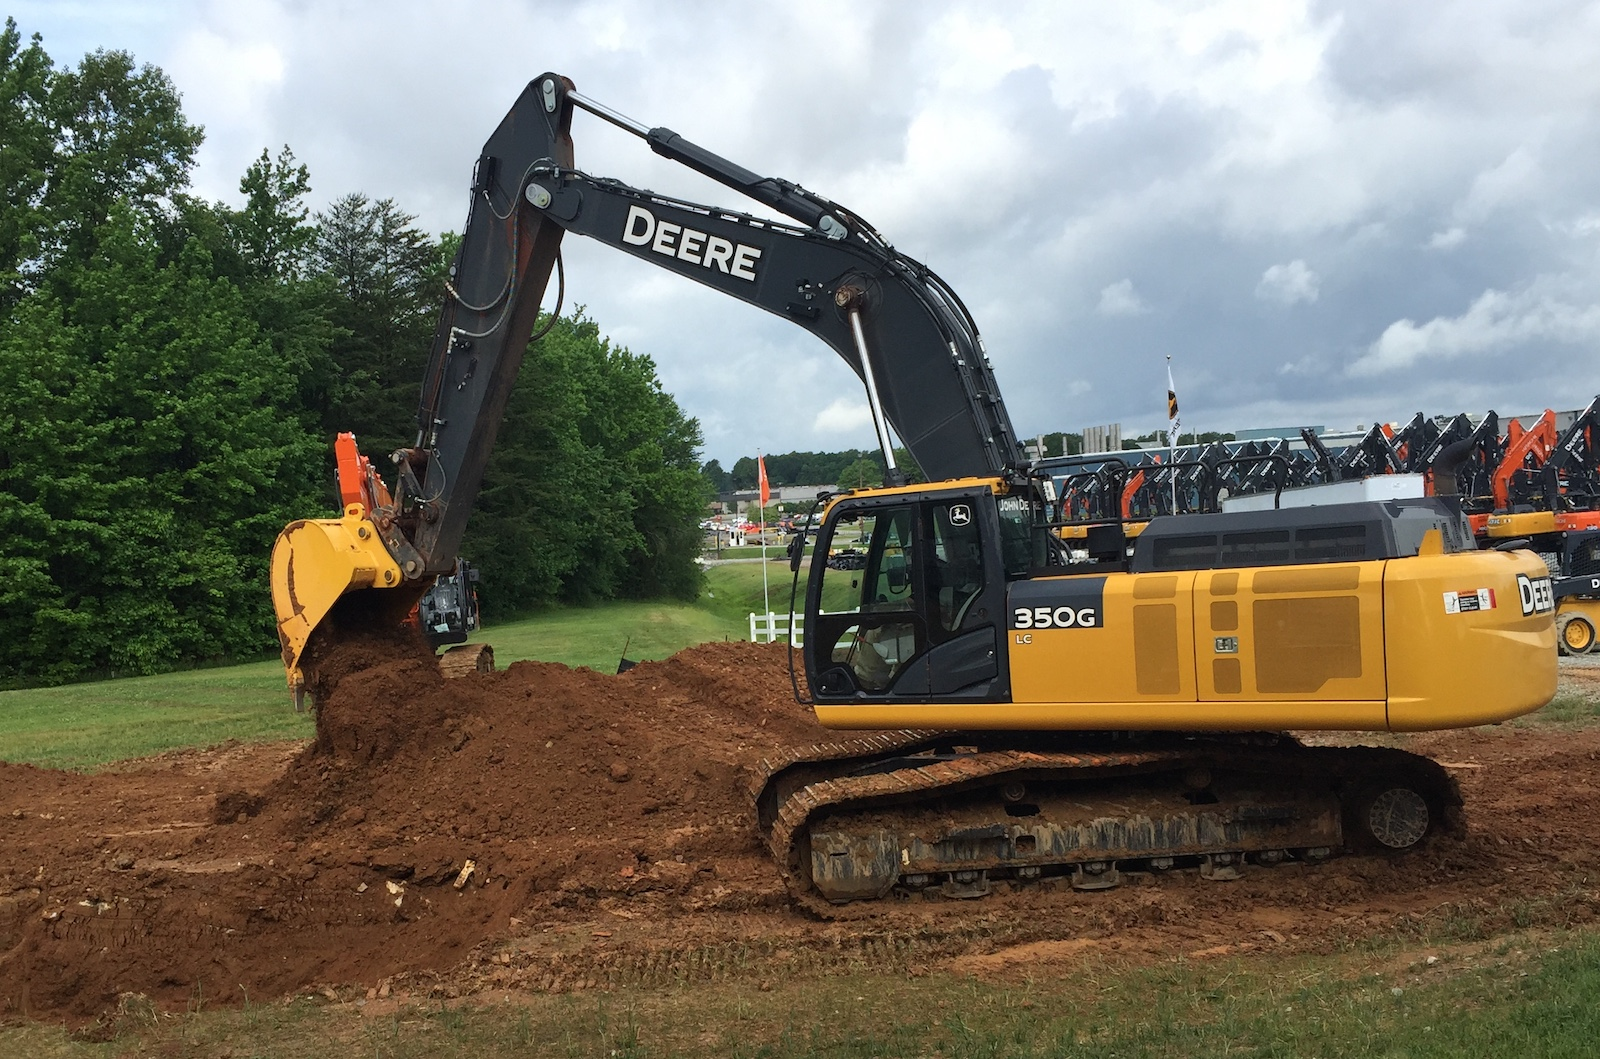 Deere demonstrated grade guidance on the 350G excavator